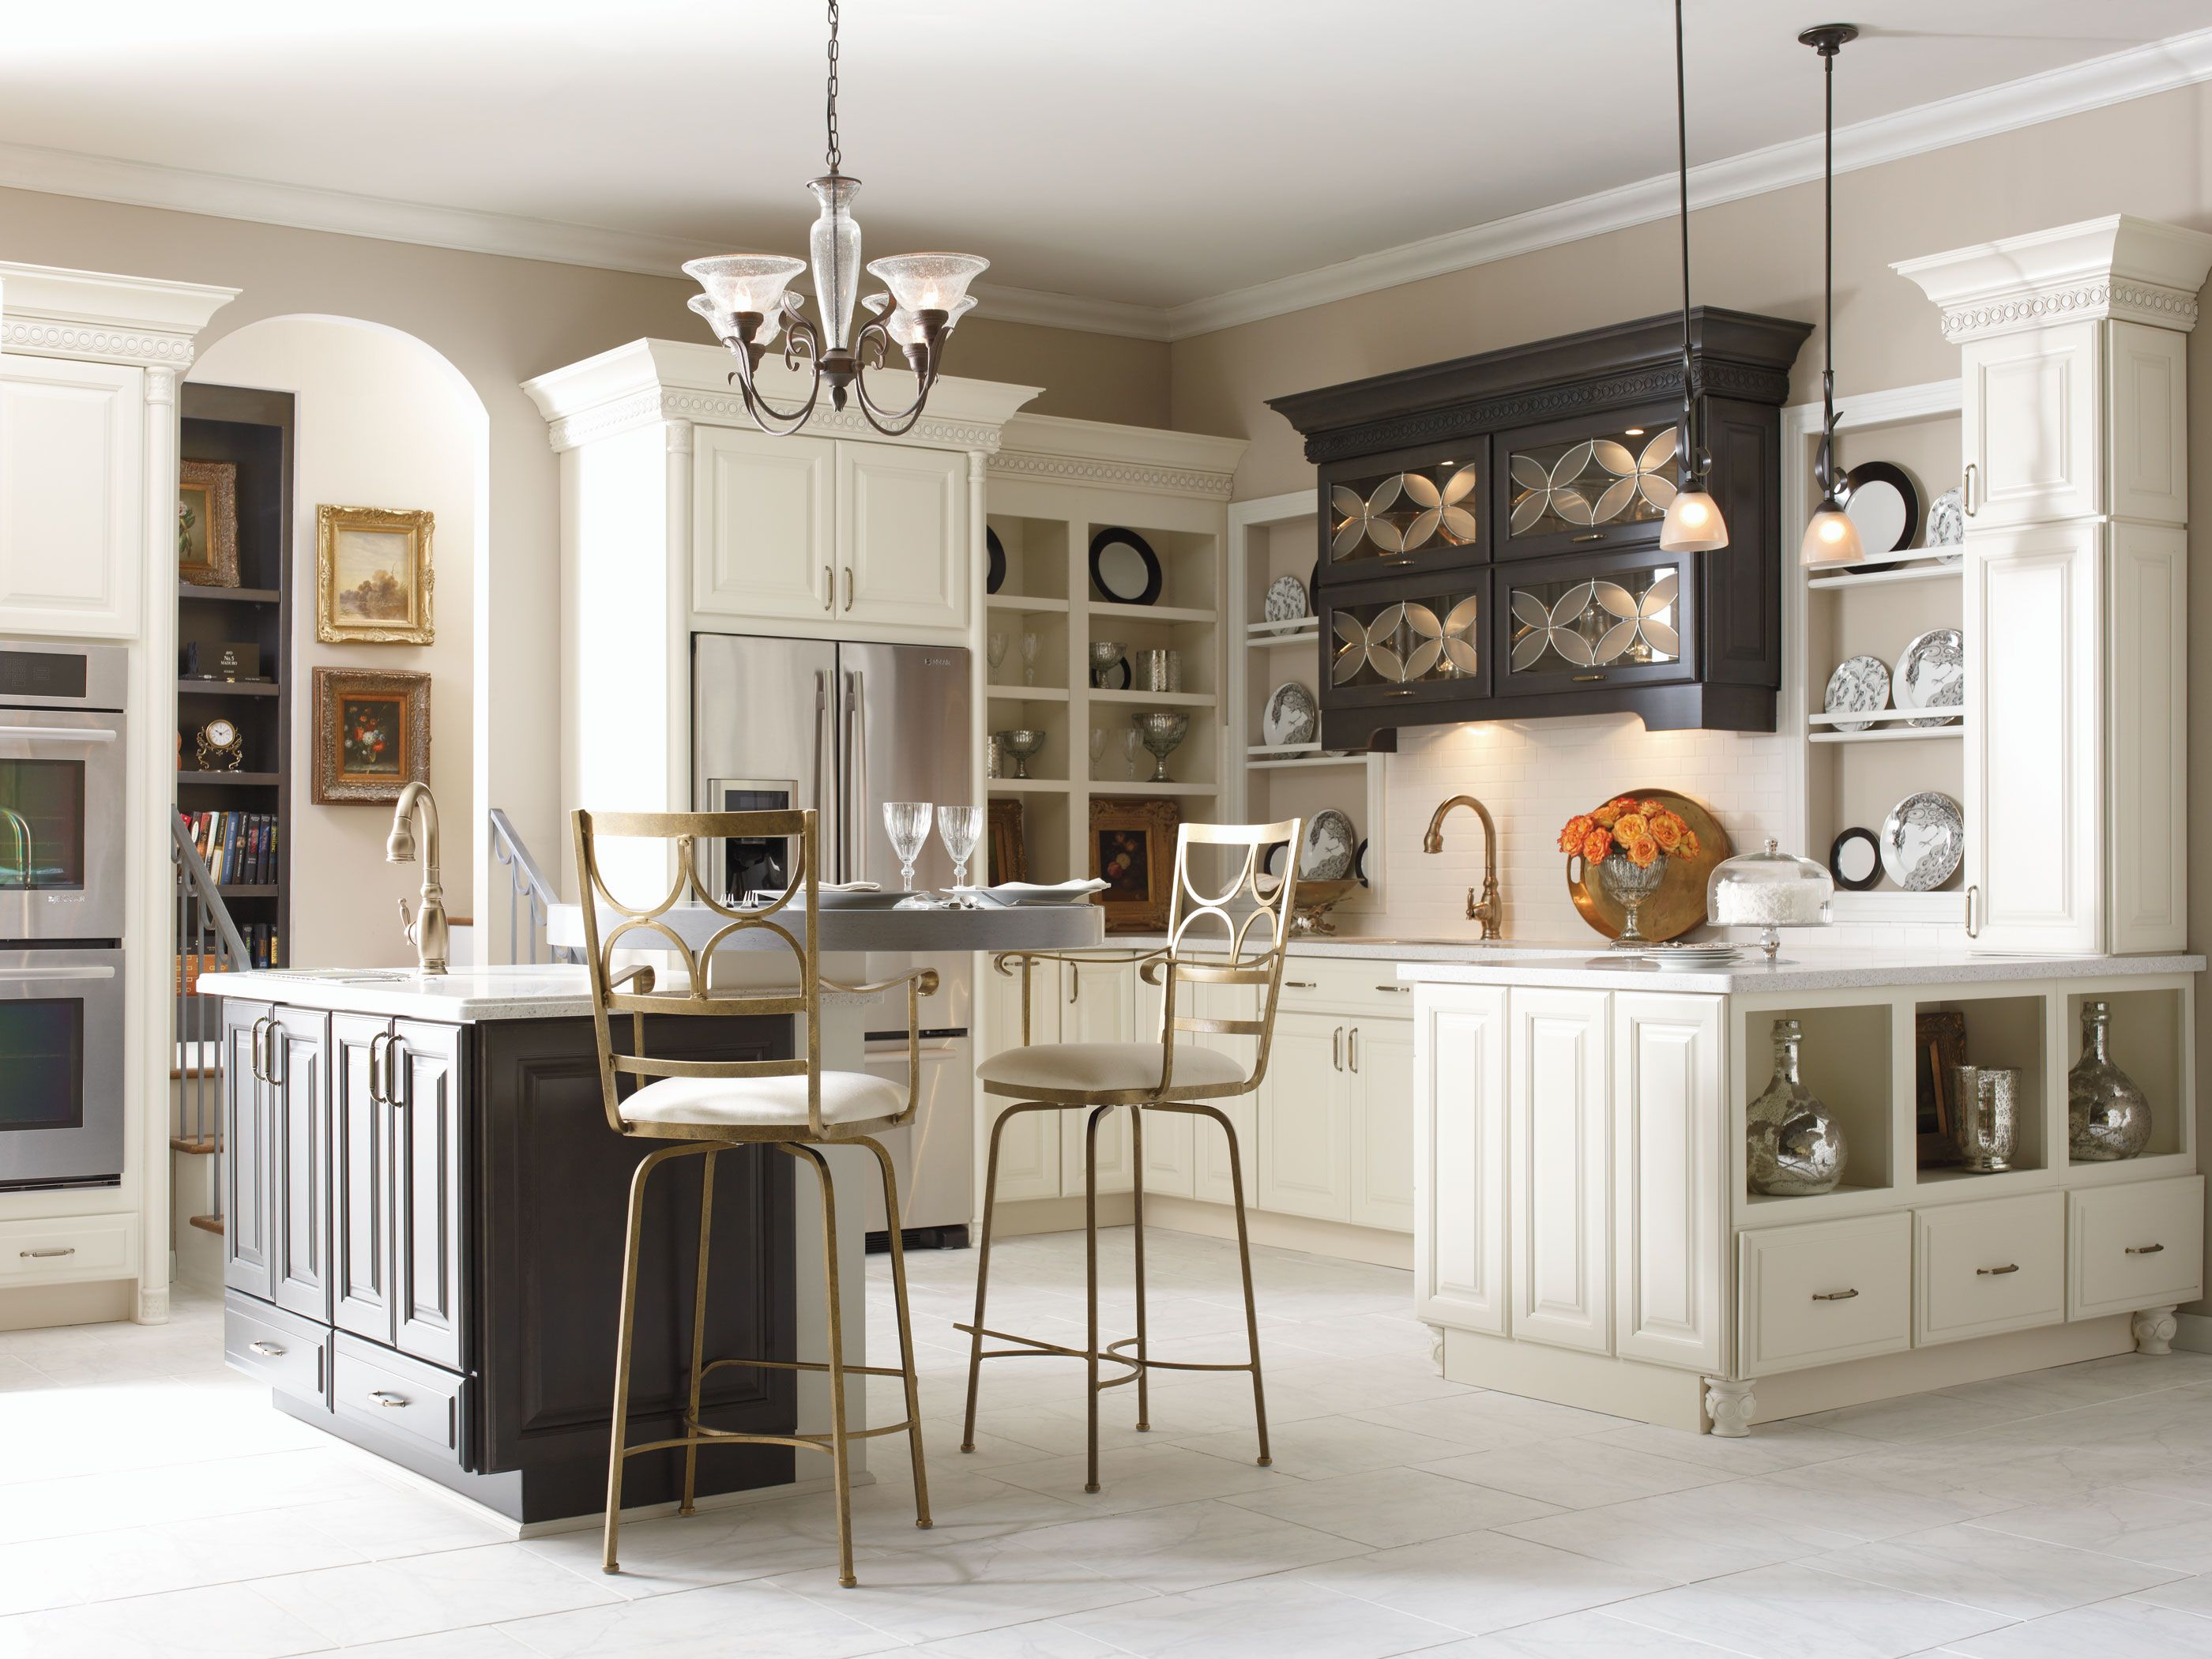 Masterbrand Kitchen Cabinets 217 Best Images About Masterbrand Cabinetry On Pinterest Sweet